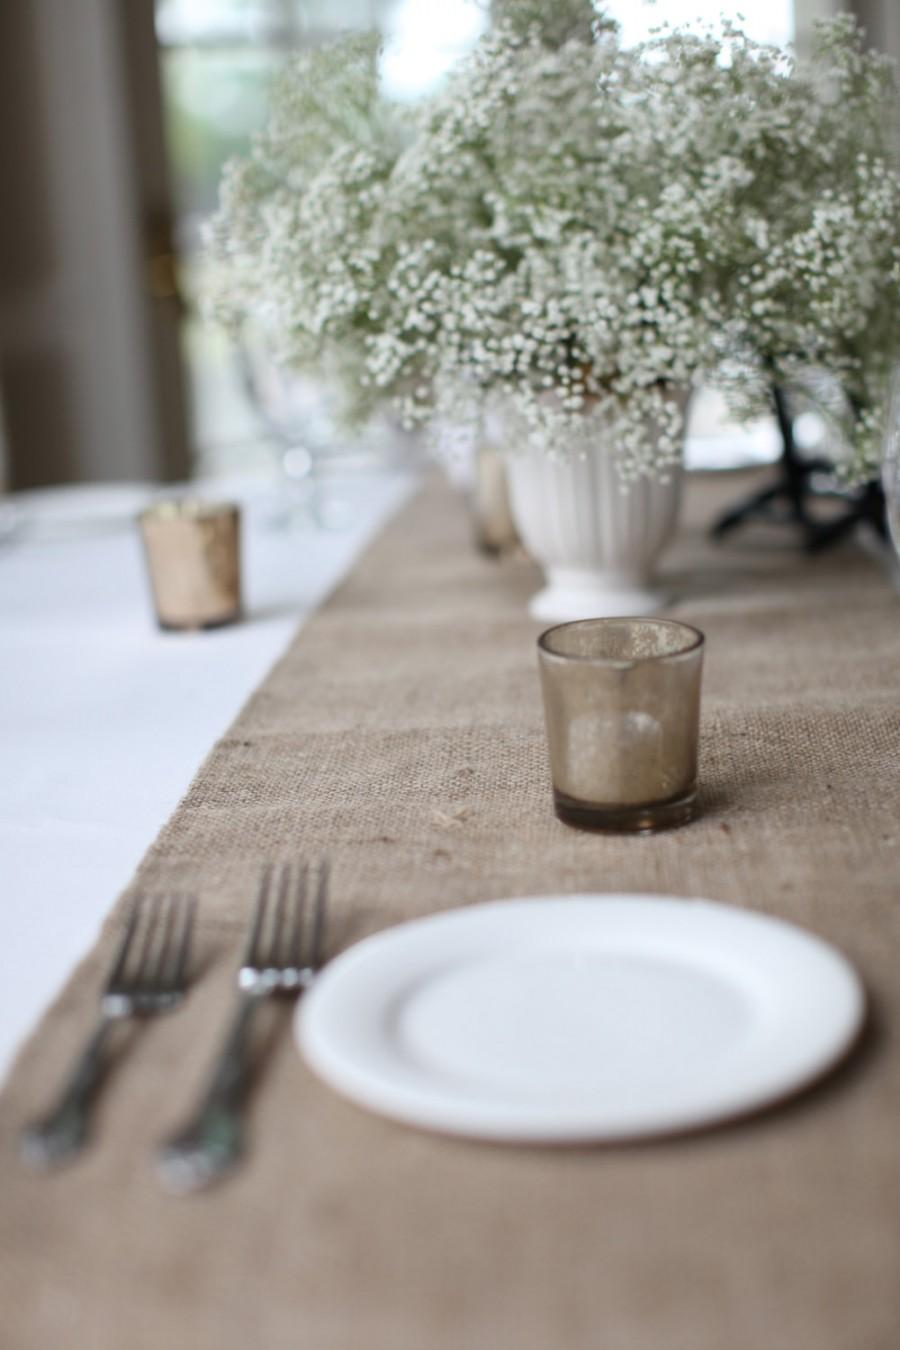 Hochzeit - Simple and Chic Hemmed Burlap Table Runner Thanksgiving Table Runner Rustic Home Decor Custom Sizes Available